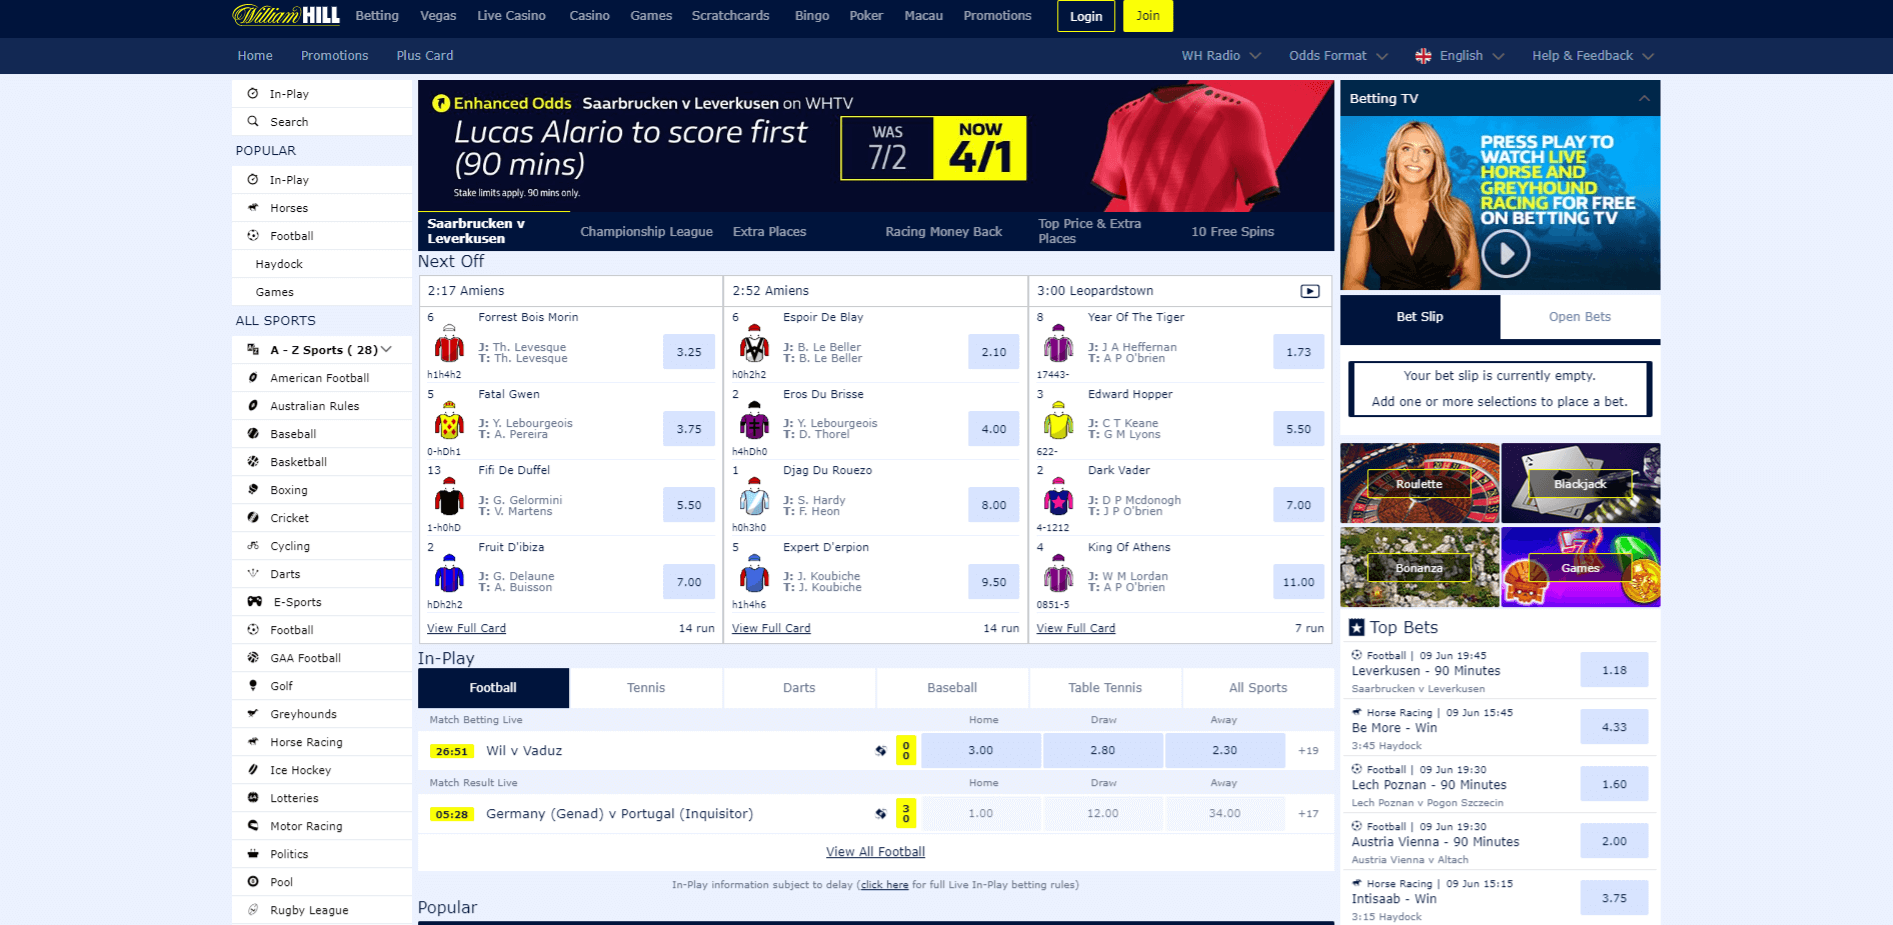 sports betting on William Hill